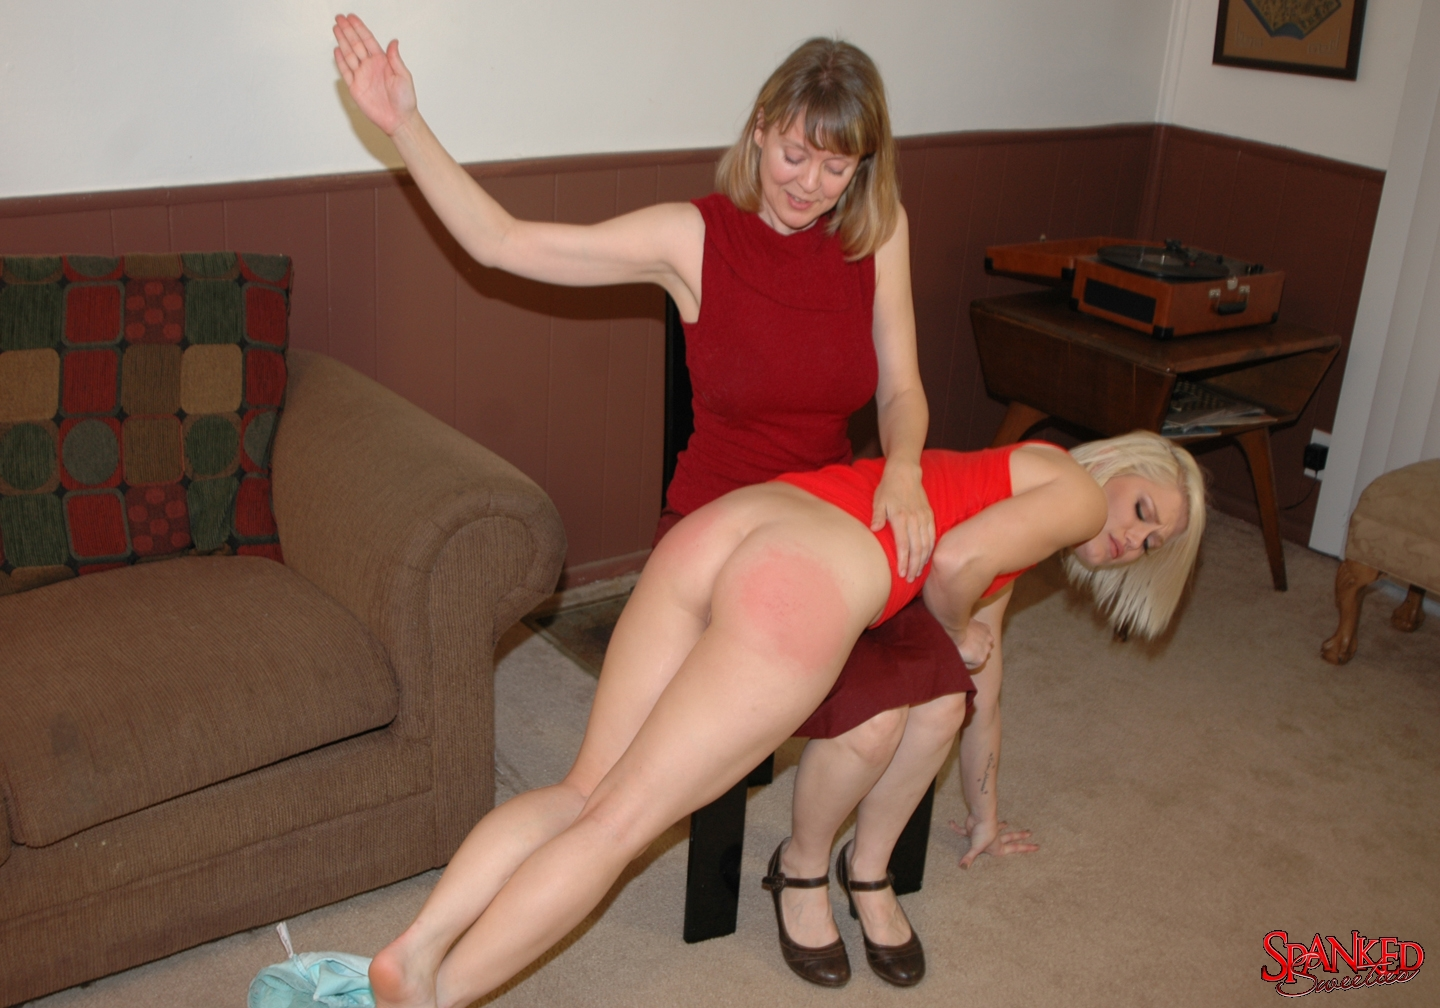 Ash hot girls spanked you inquisitive